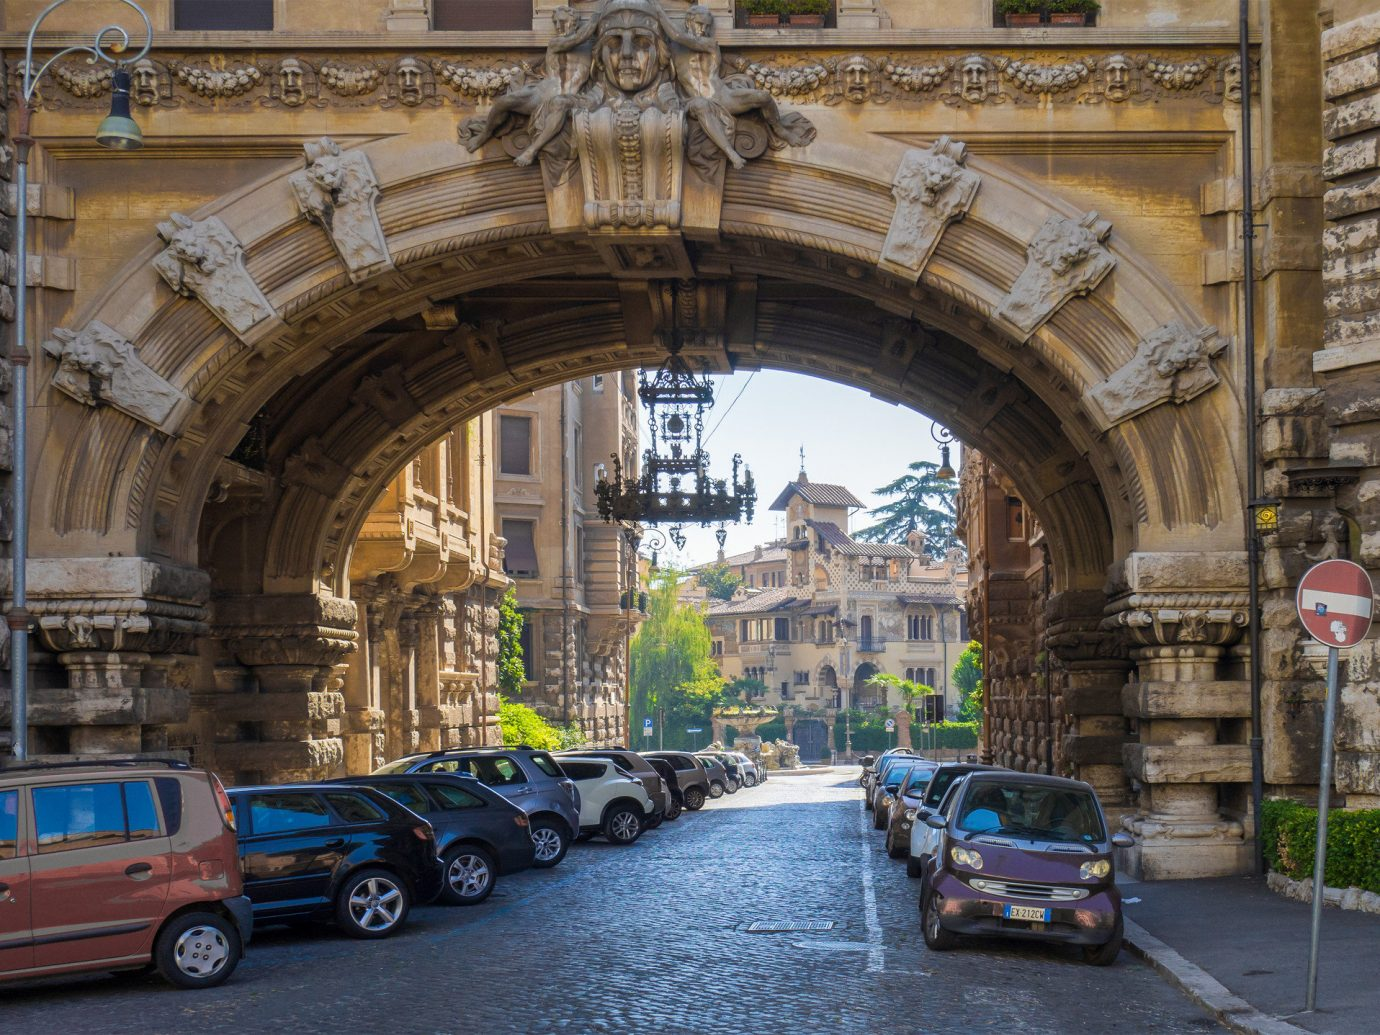 Travel Tips building outdoor arch landmark car Town Architecture way City street facade medieval architecture sky sidewalk stone